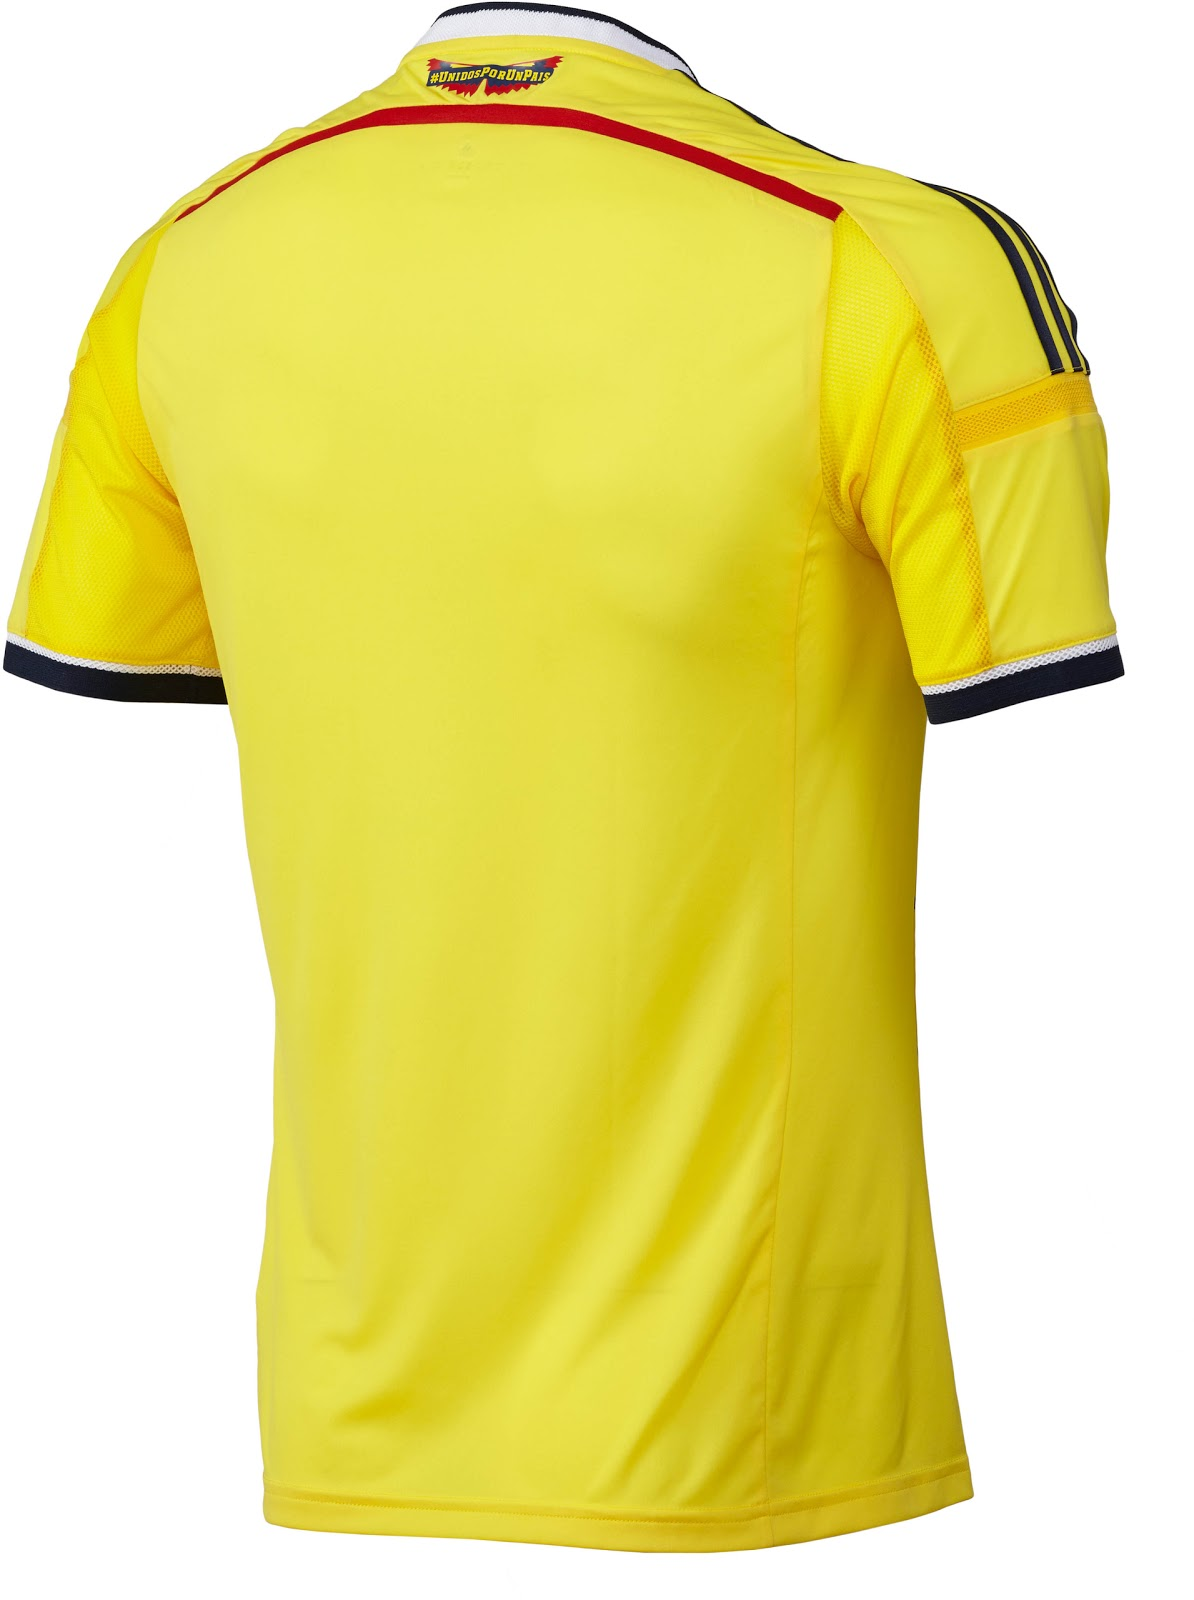 Colombia+2014+World+Cup+Home+Kit+(6).jpg